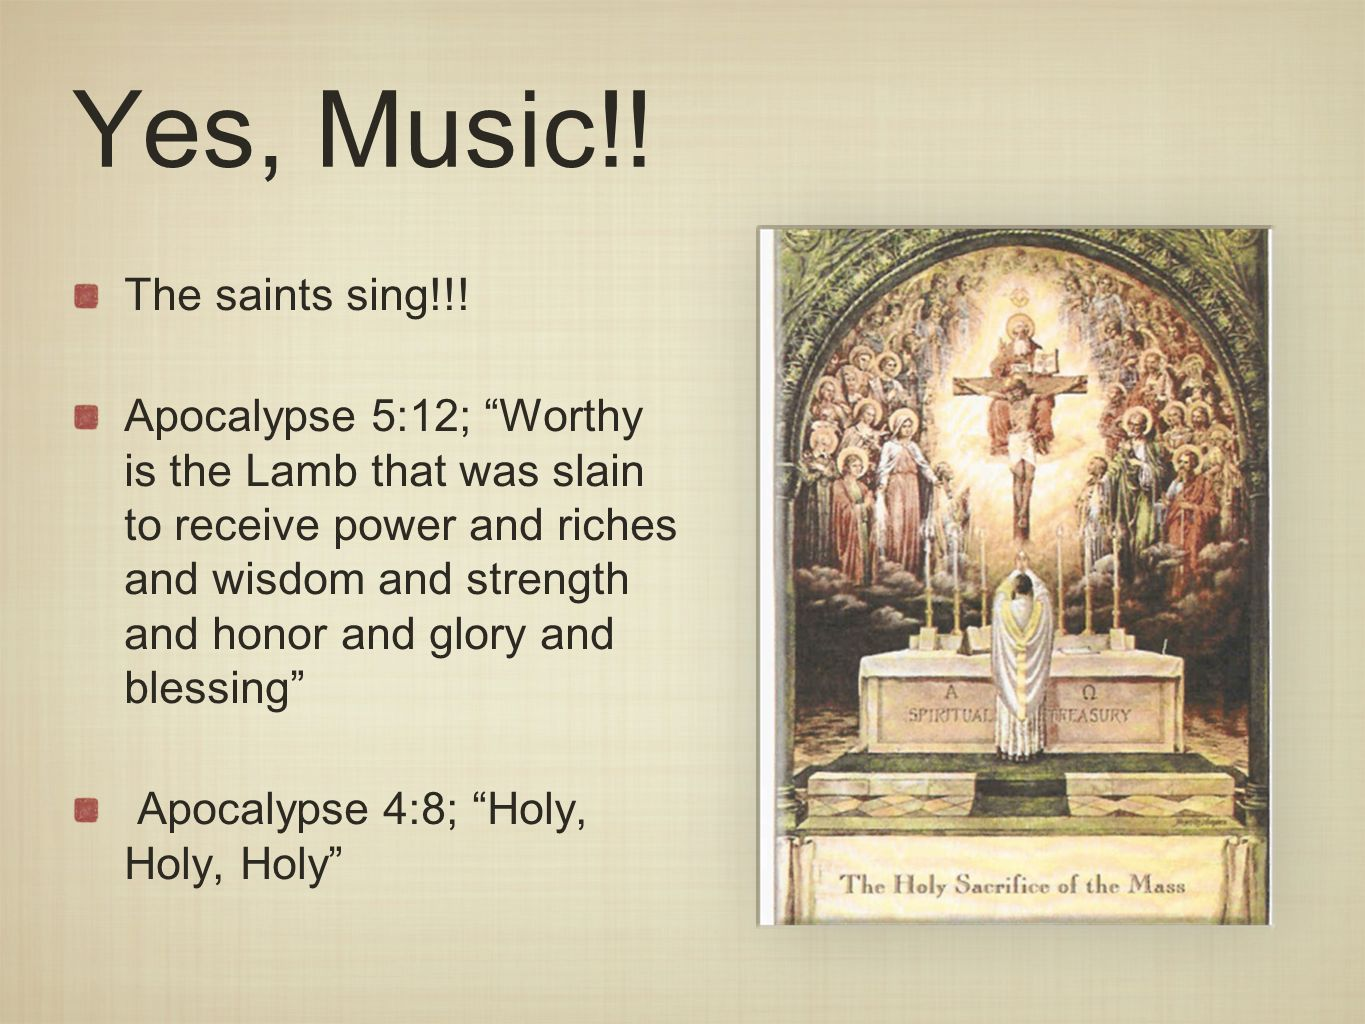 Composers Following the Saints, composers through the centuries have written music for these beautiful songs.